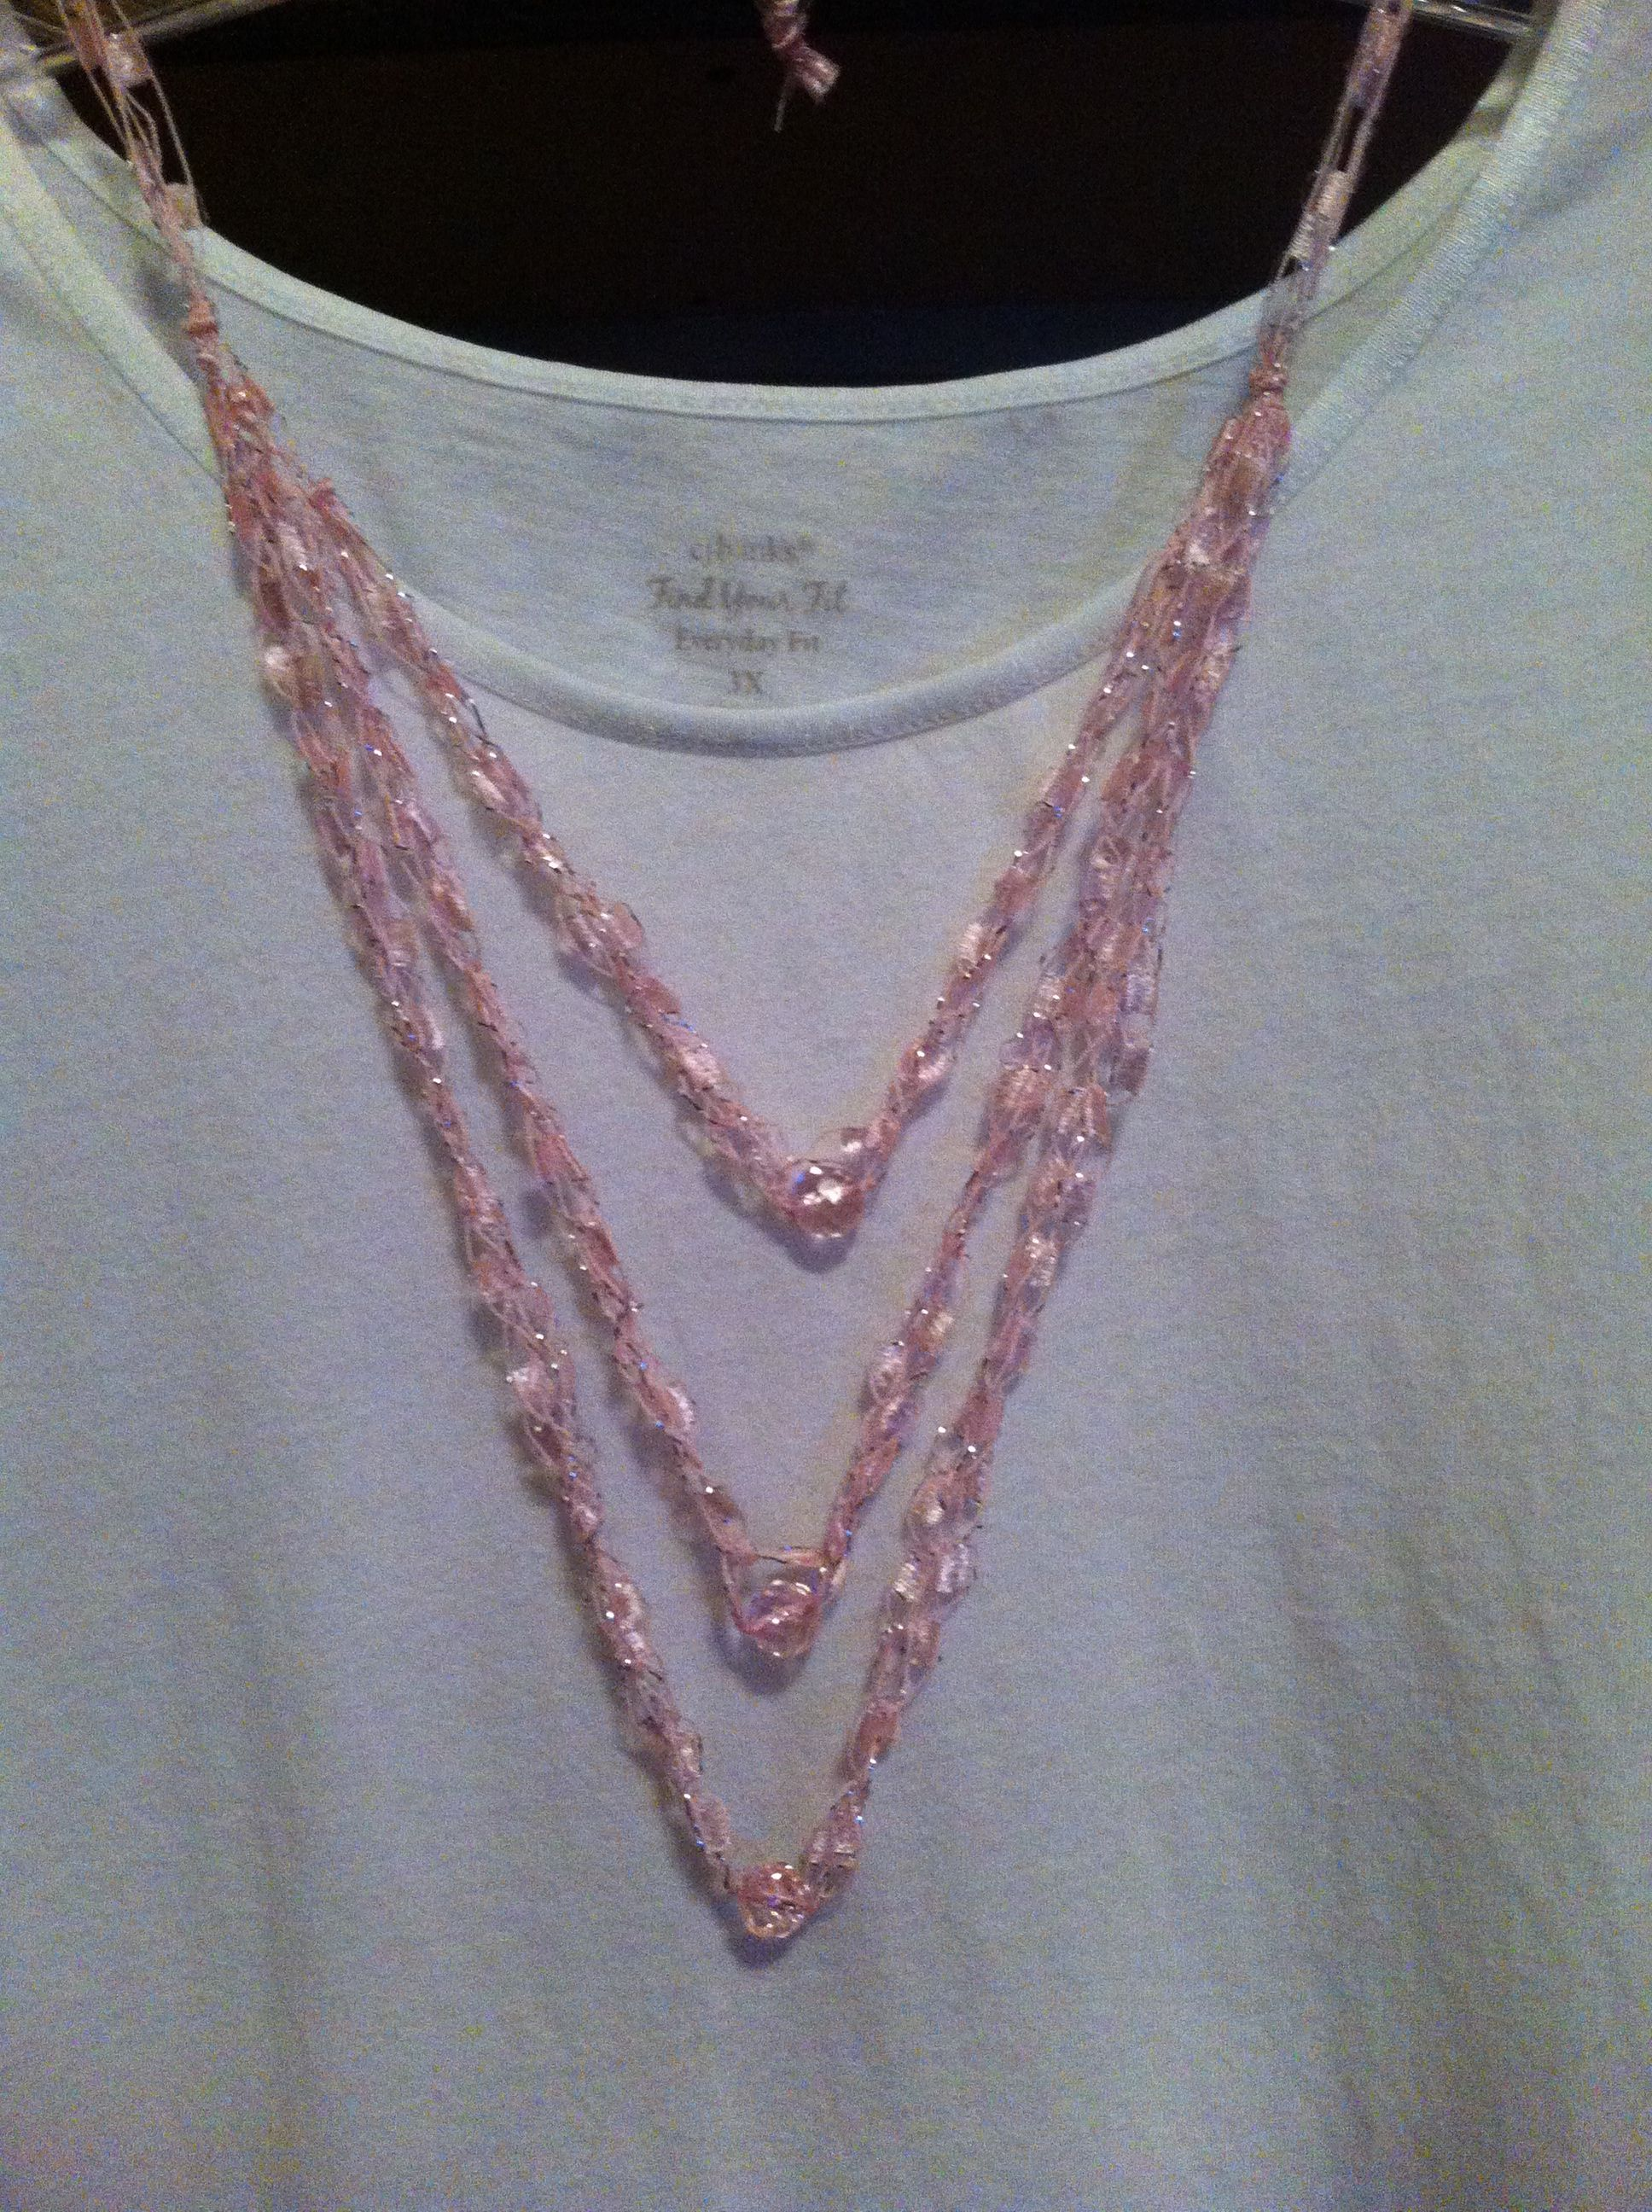 Ladder Yarn Necklace With Beads Ladder Yarn Projects Pinterest